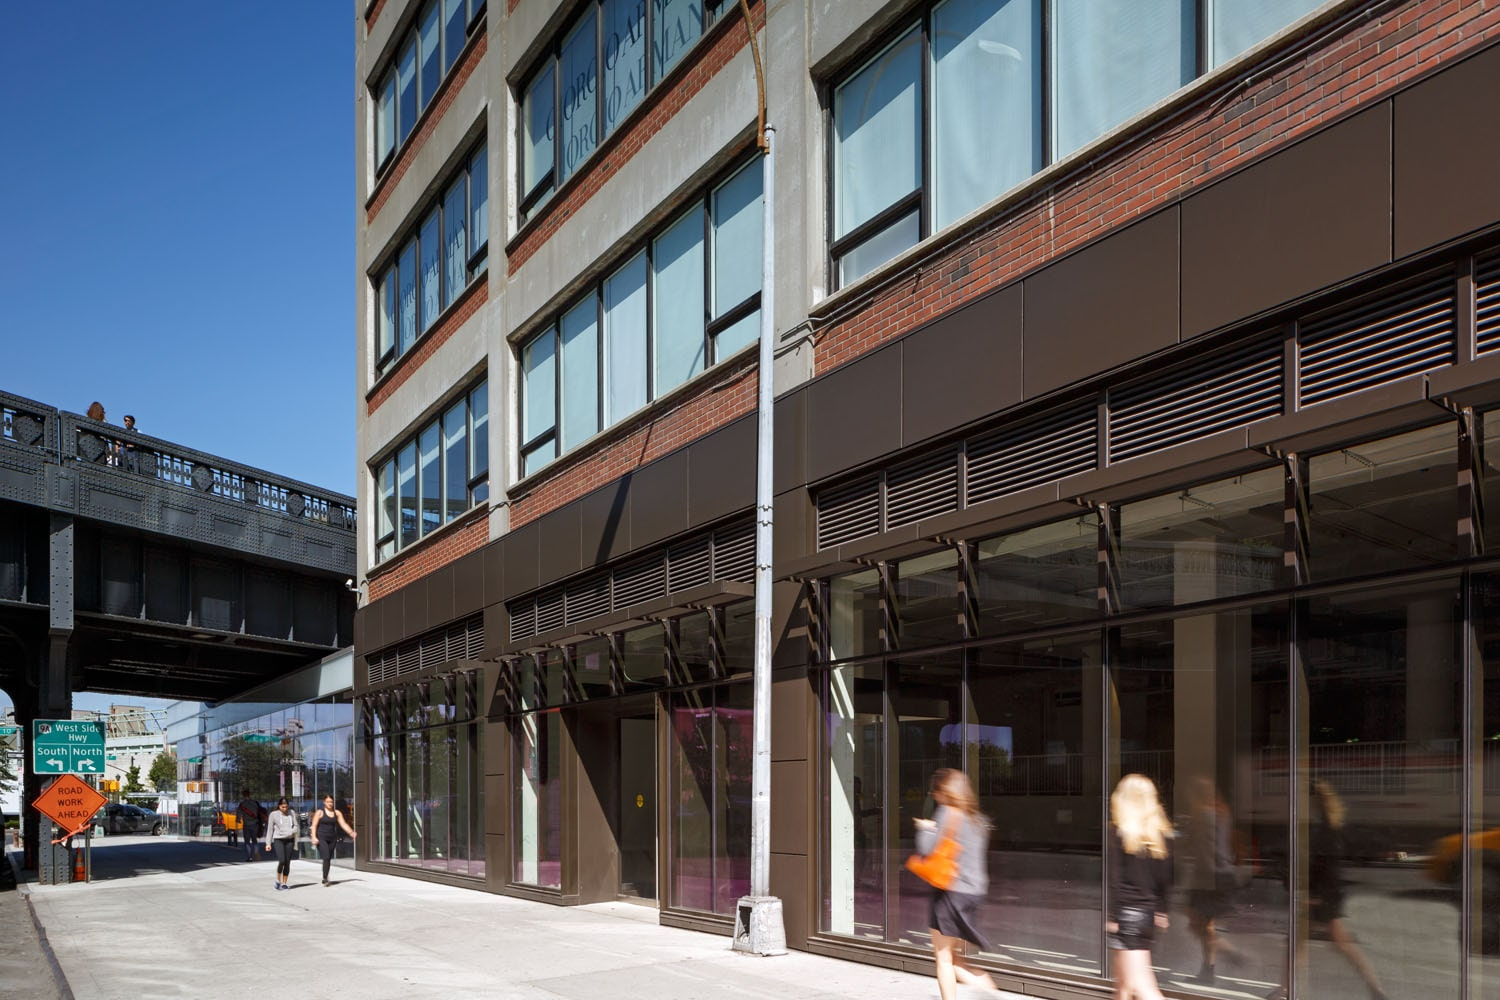 Storefront on 14th Street with the Highline